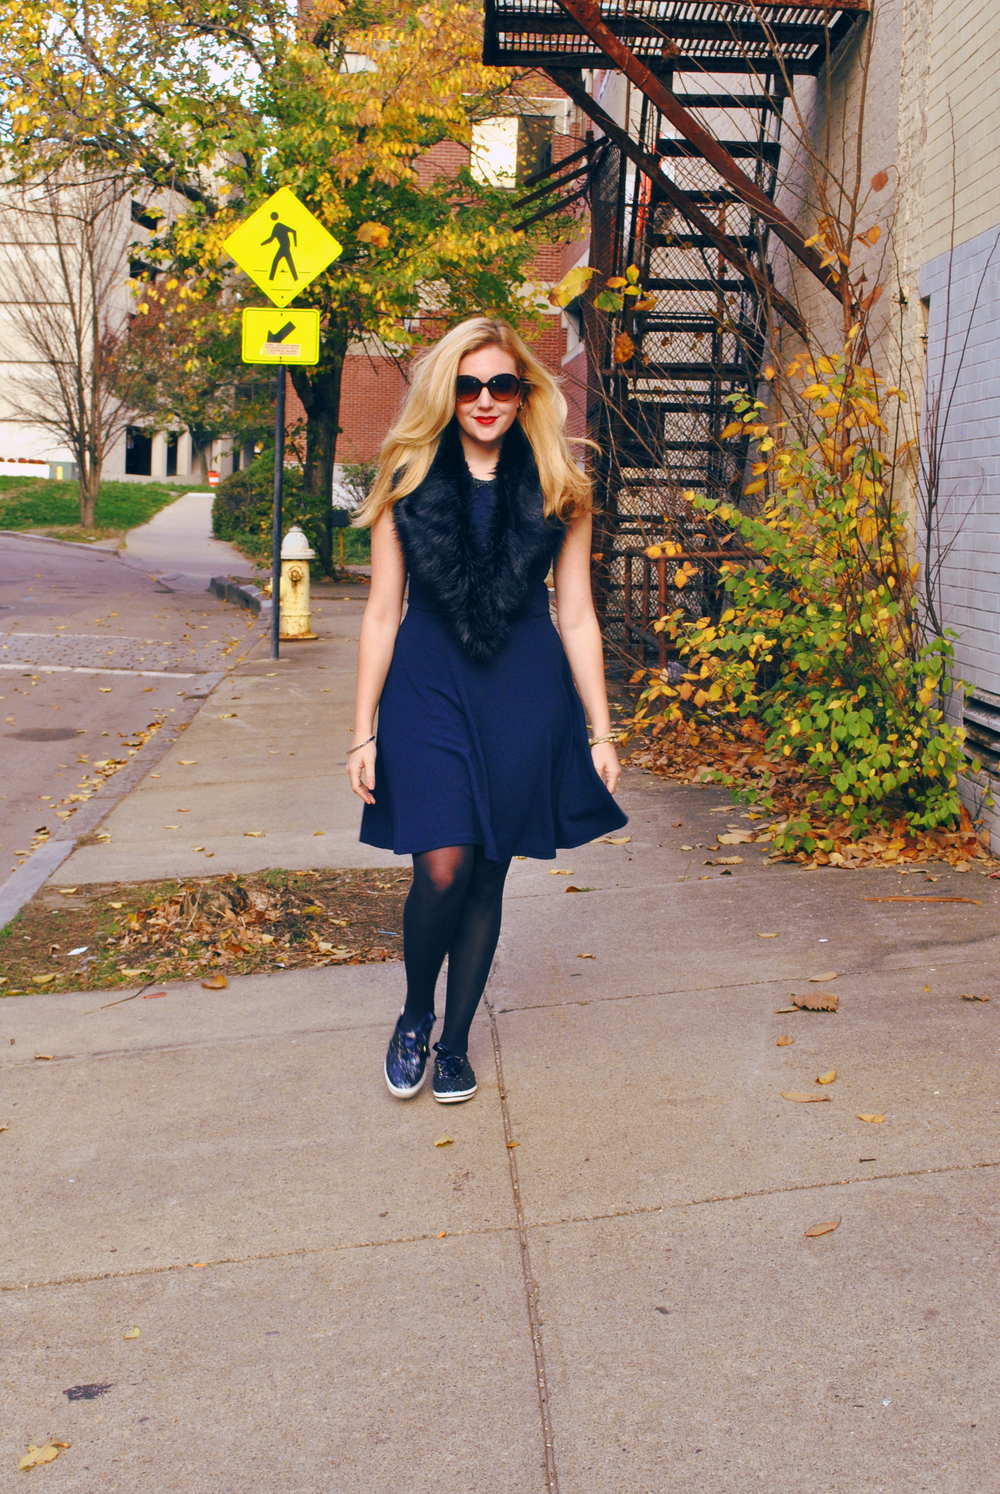 thoughtfulwish | preppy outfit // boston fashion // new england fashion // preppy // faux fur // navy dress // kate spade // primark boston // scream queens fashion